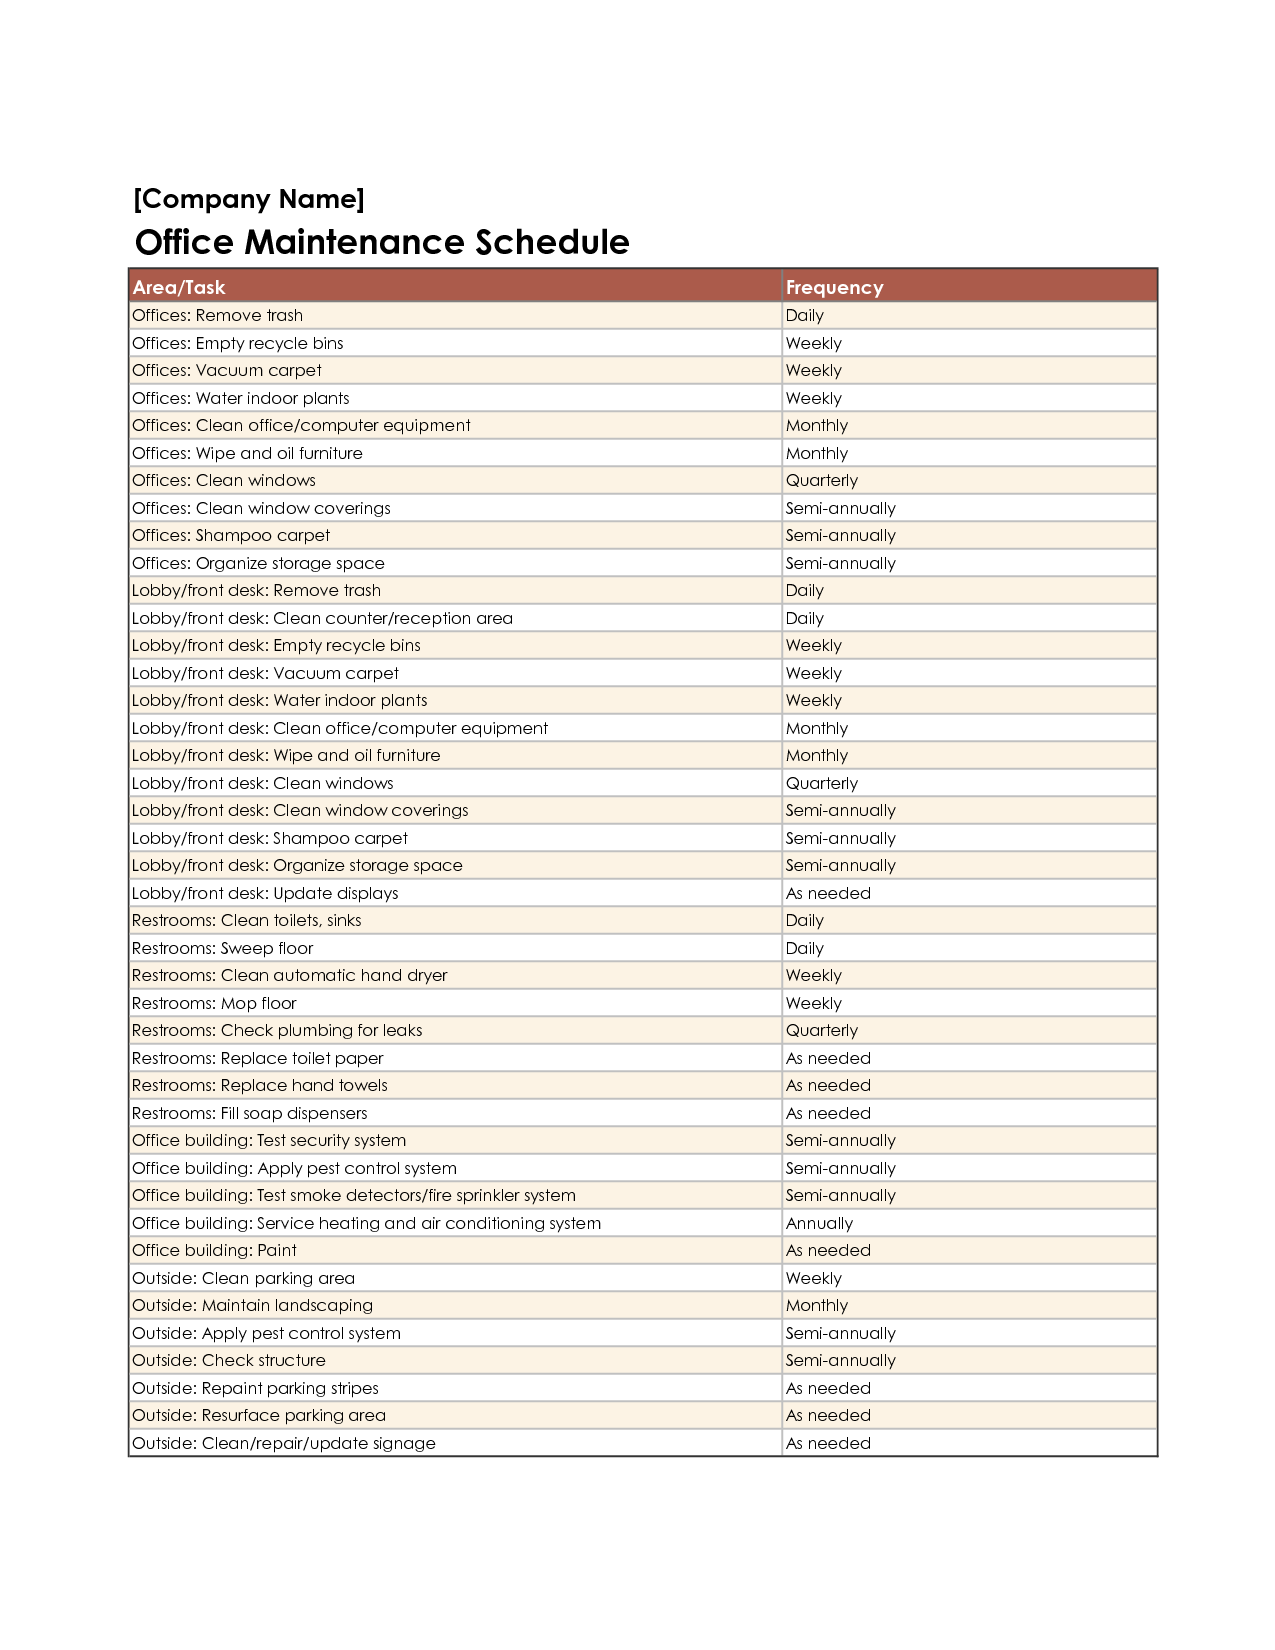 Equipment maintenance schedule template excel httpamazon equipment maintenance schedule template excel httpamazongp alramifo Choice Image